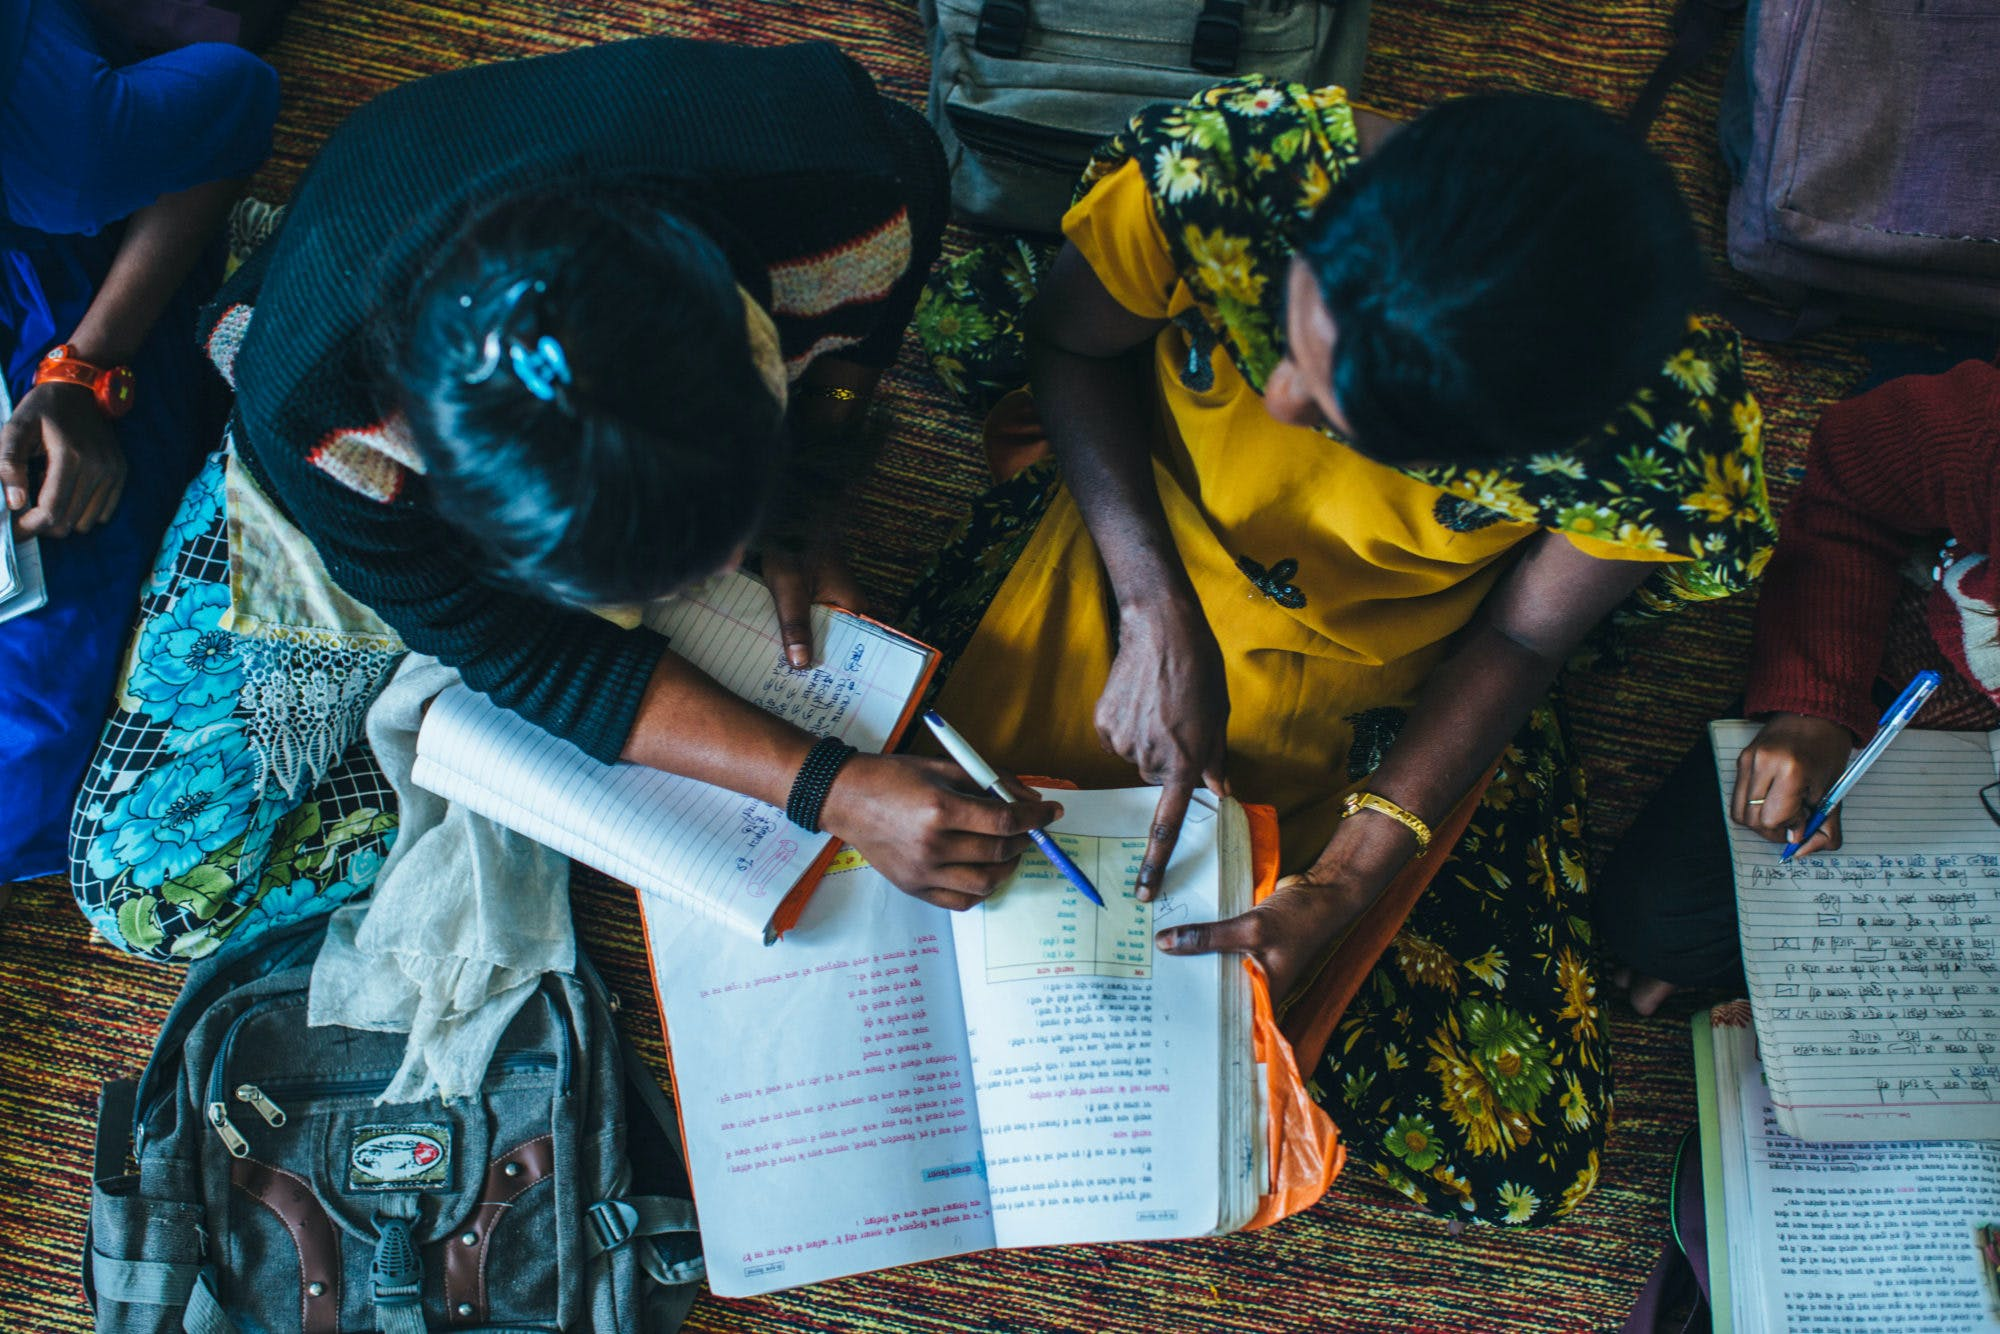 Aerial shot of two girls in developing community of India hovering over a textbook and reading together